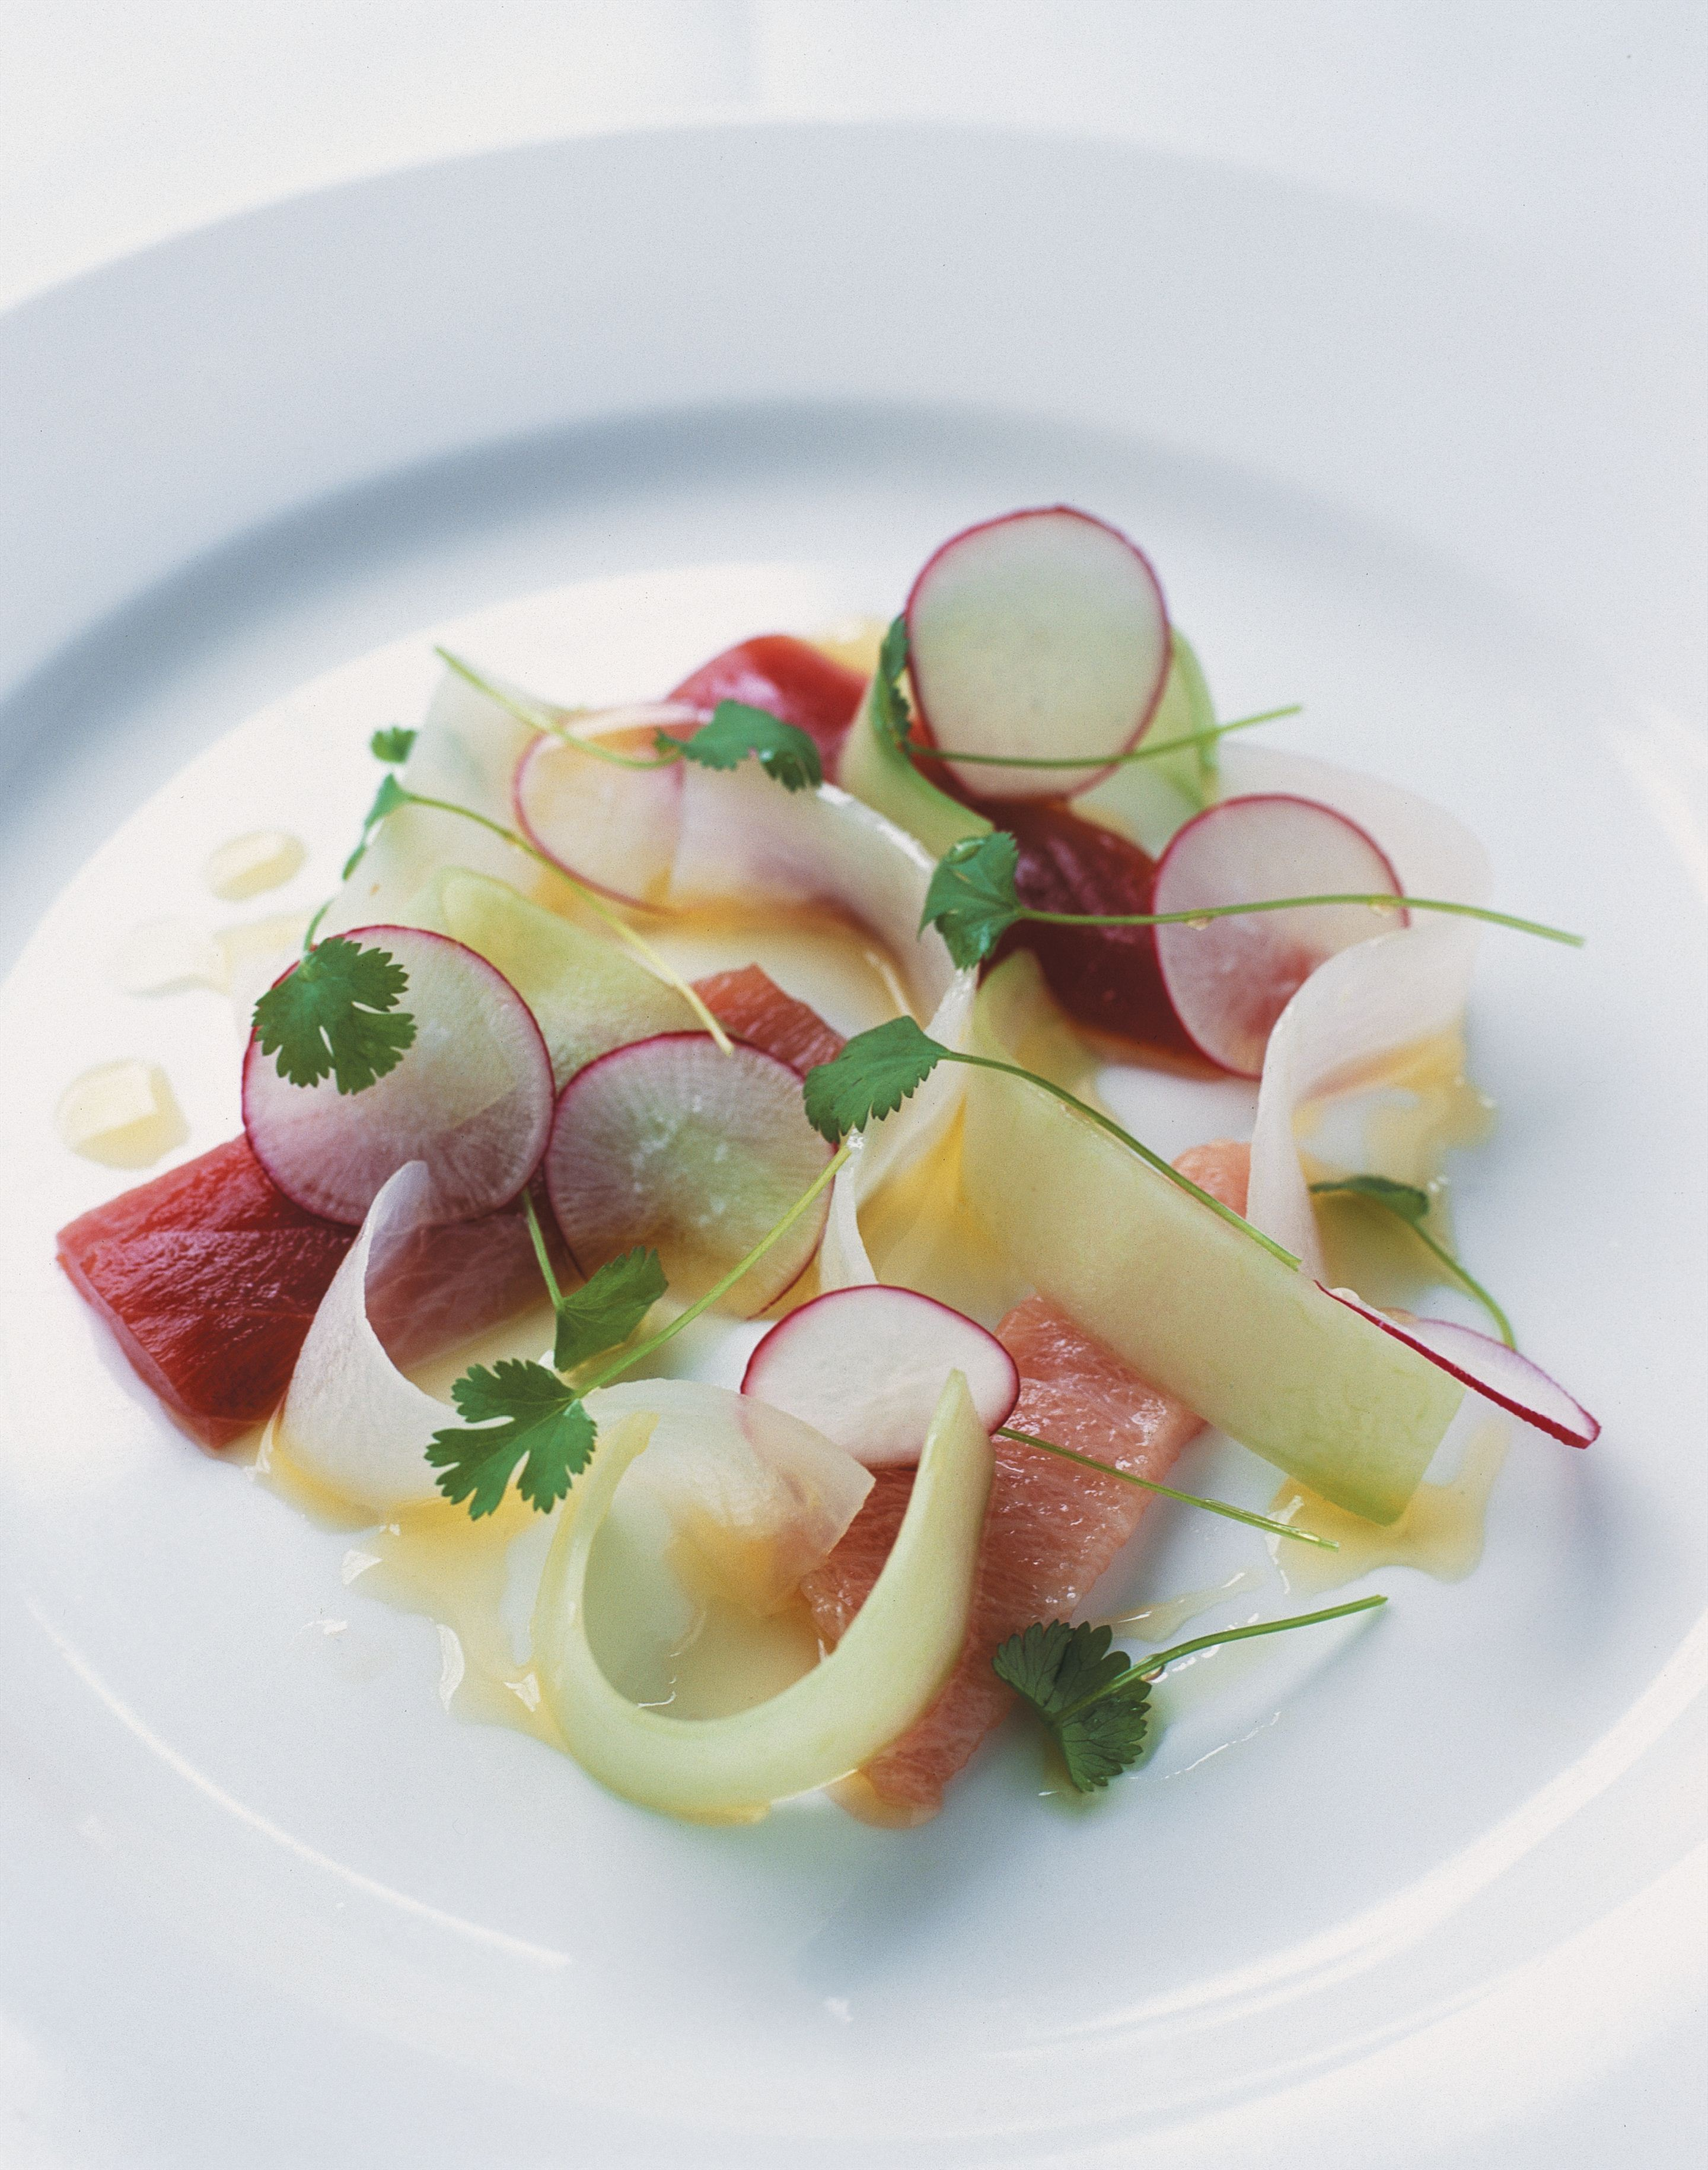 Sashimi of bluefin tuna with pickled white radish, cucumber and baby coriander